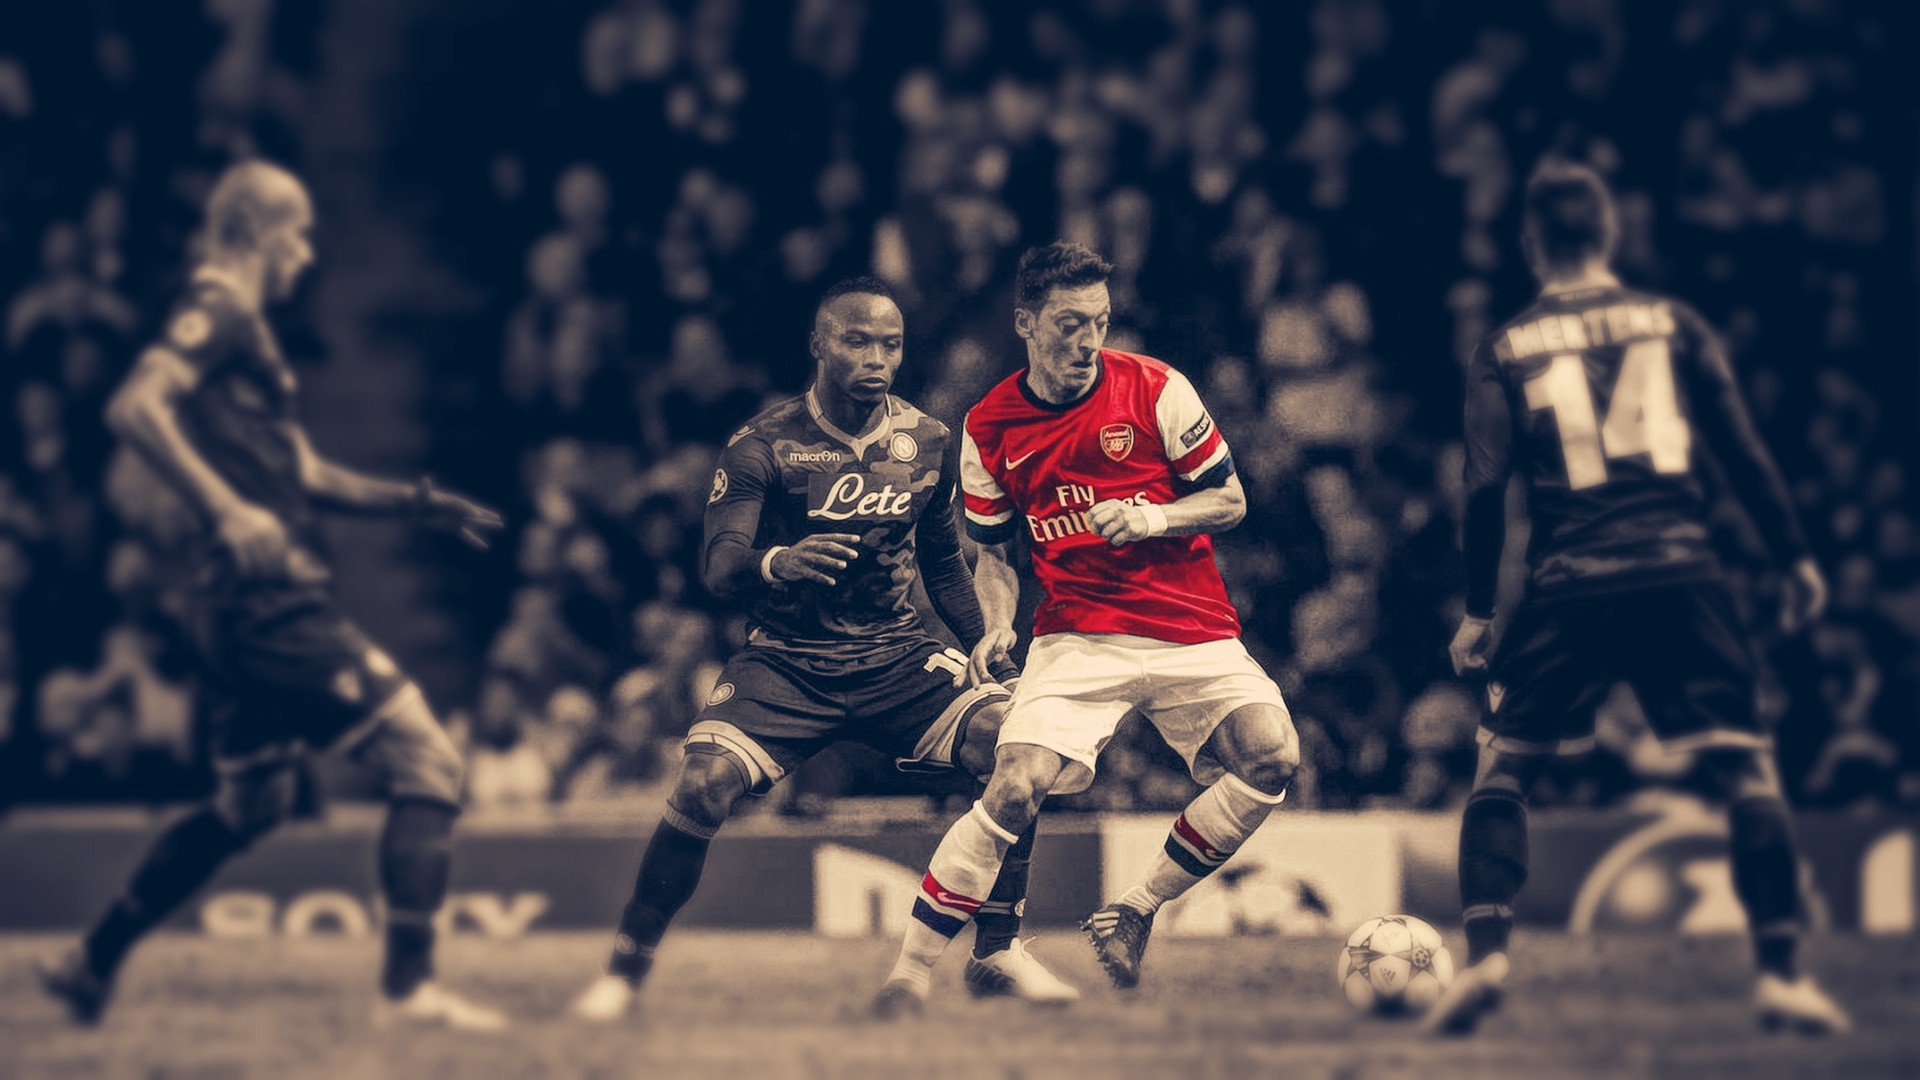 Mesut Ozil Wallpapers Hd Arsenal Soccer Hdr Arsenal Fc Mesut Ozil Selective Coloring